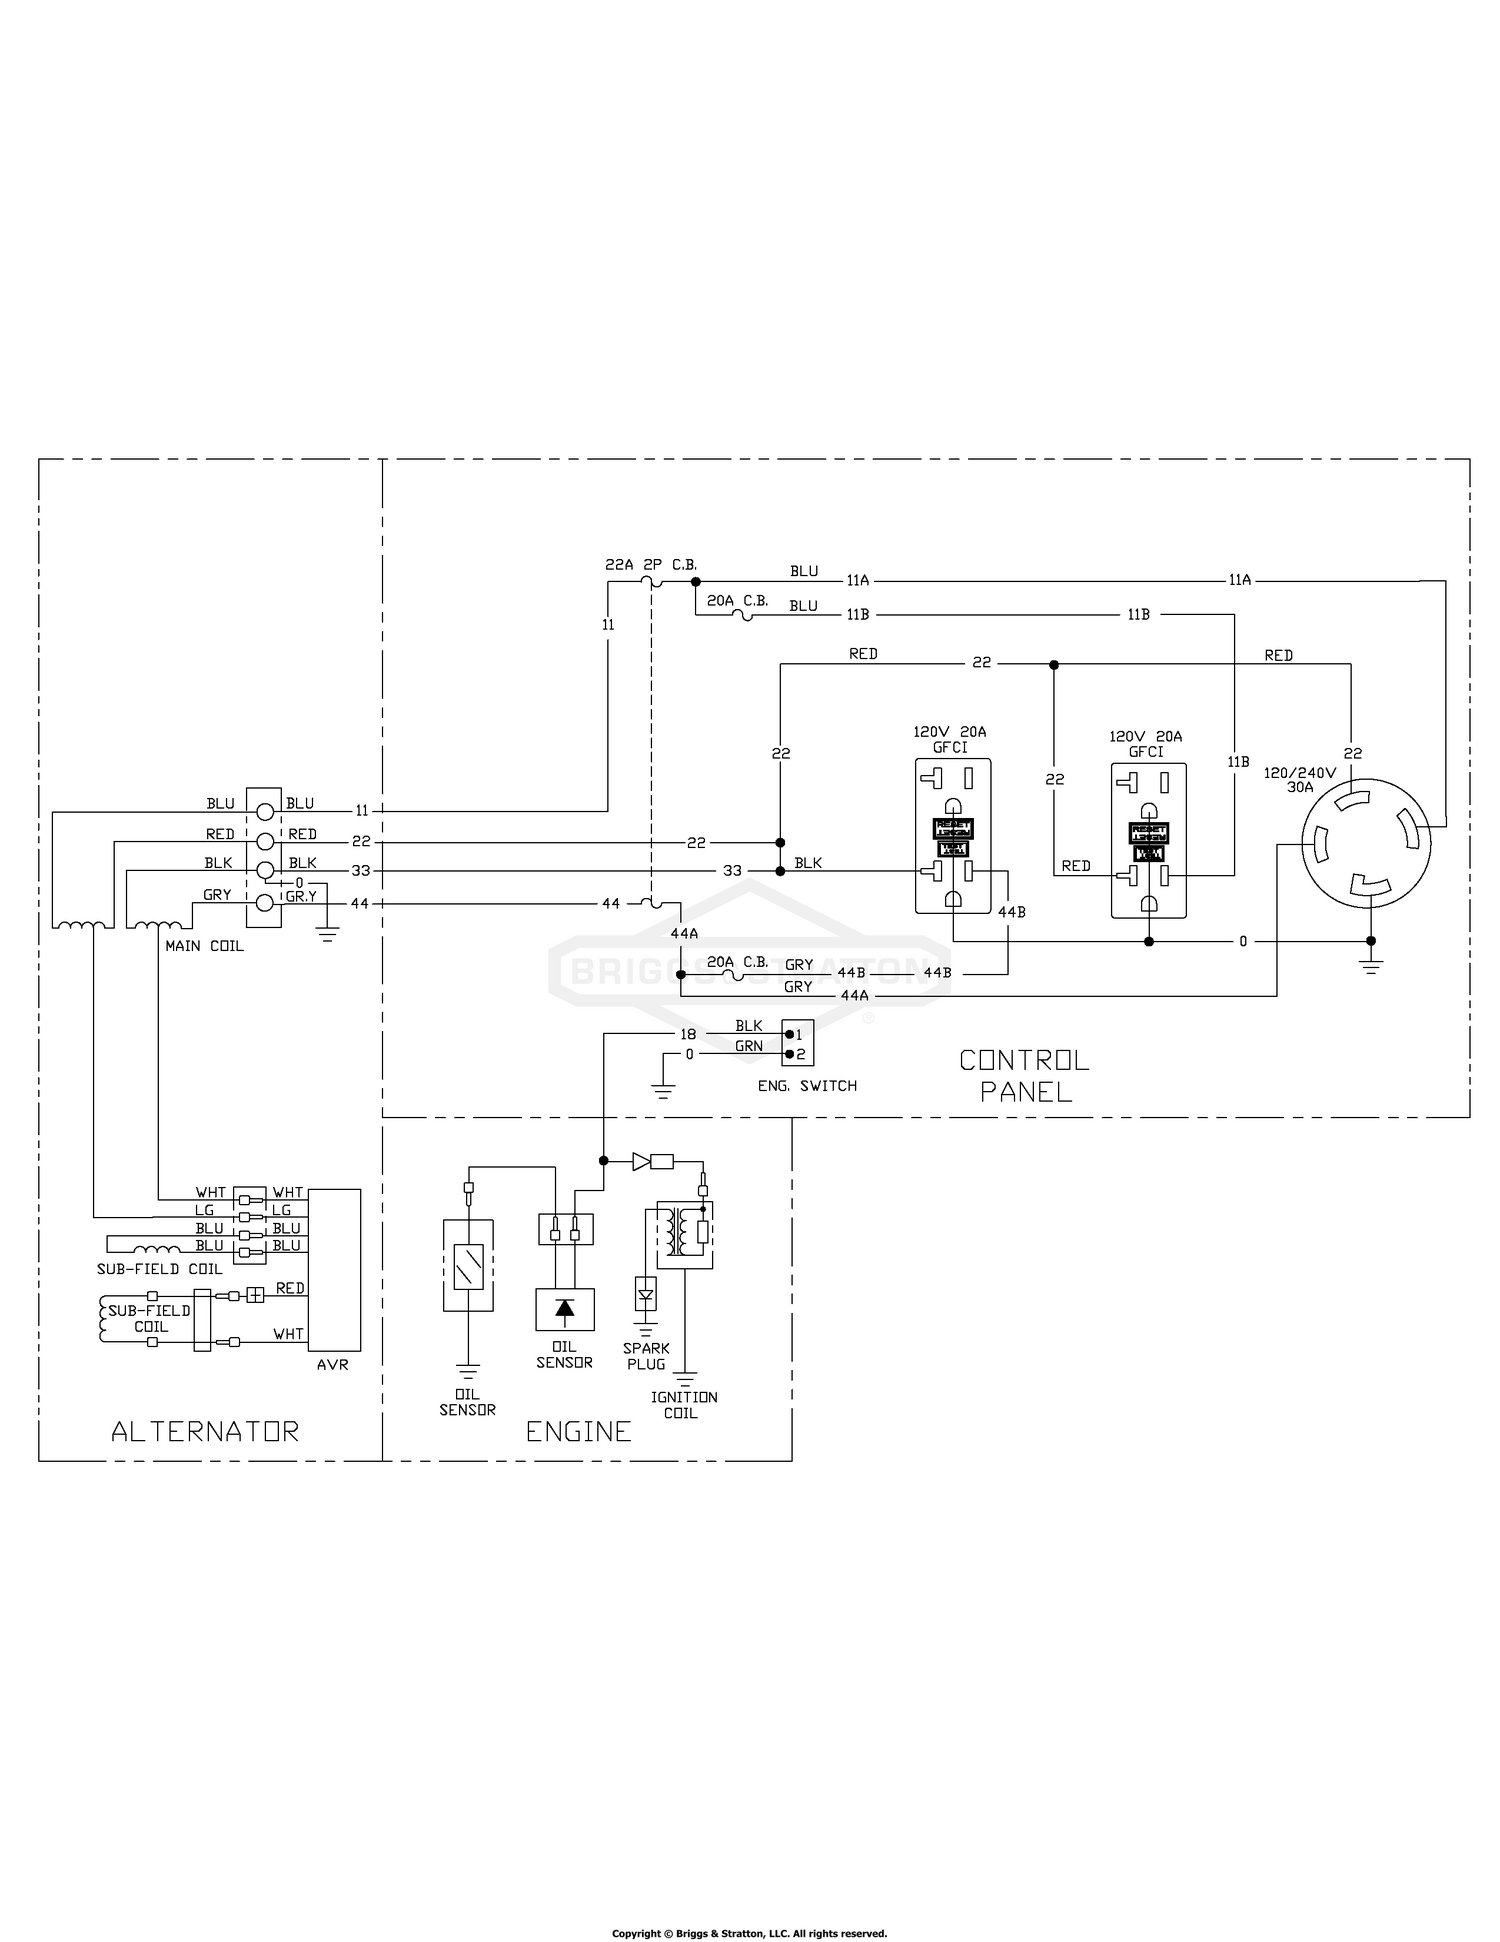 briggs and stratton generator wiring diagram briggs  amp  stratton power products del 26072017021729 030635a 01  briggs  amp  stratton power